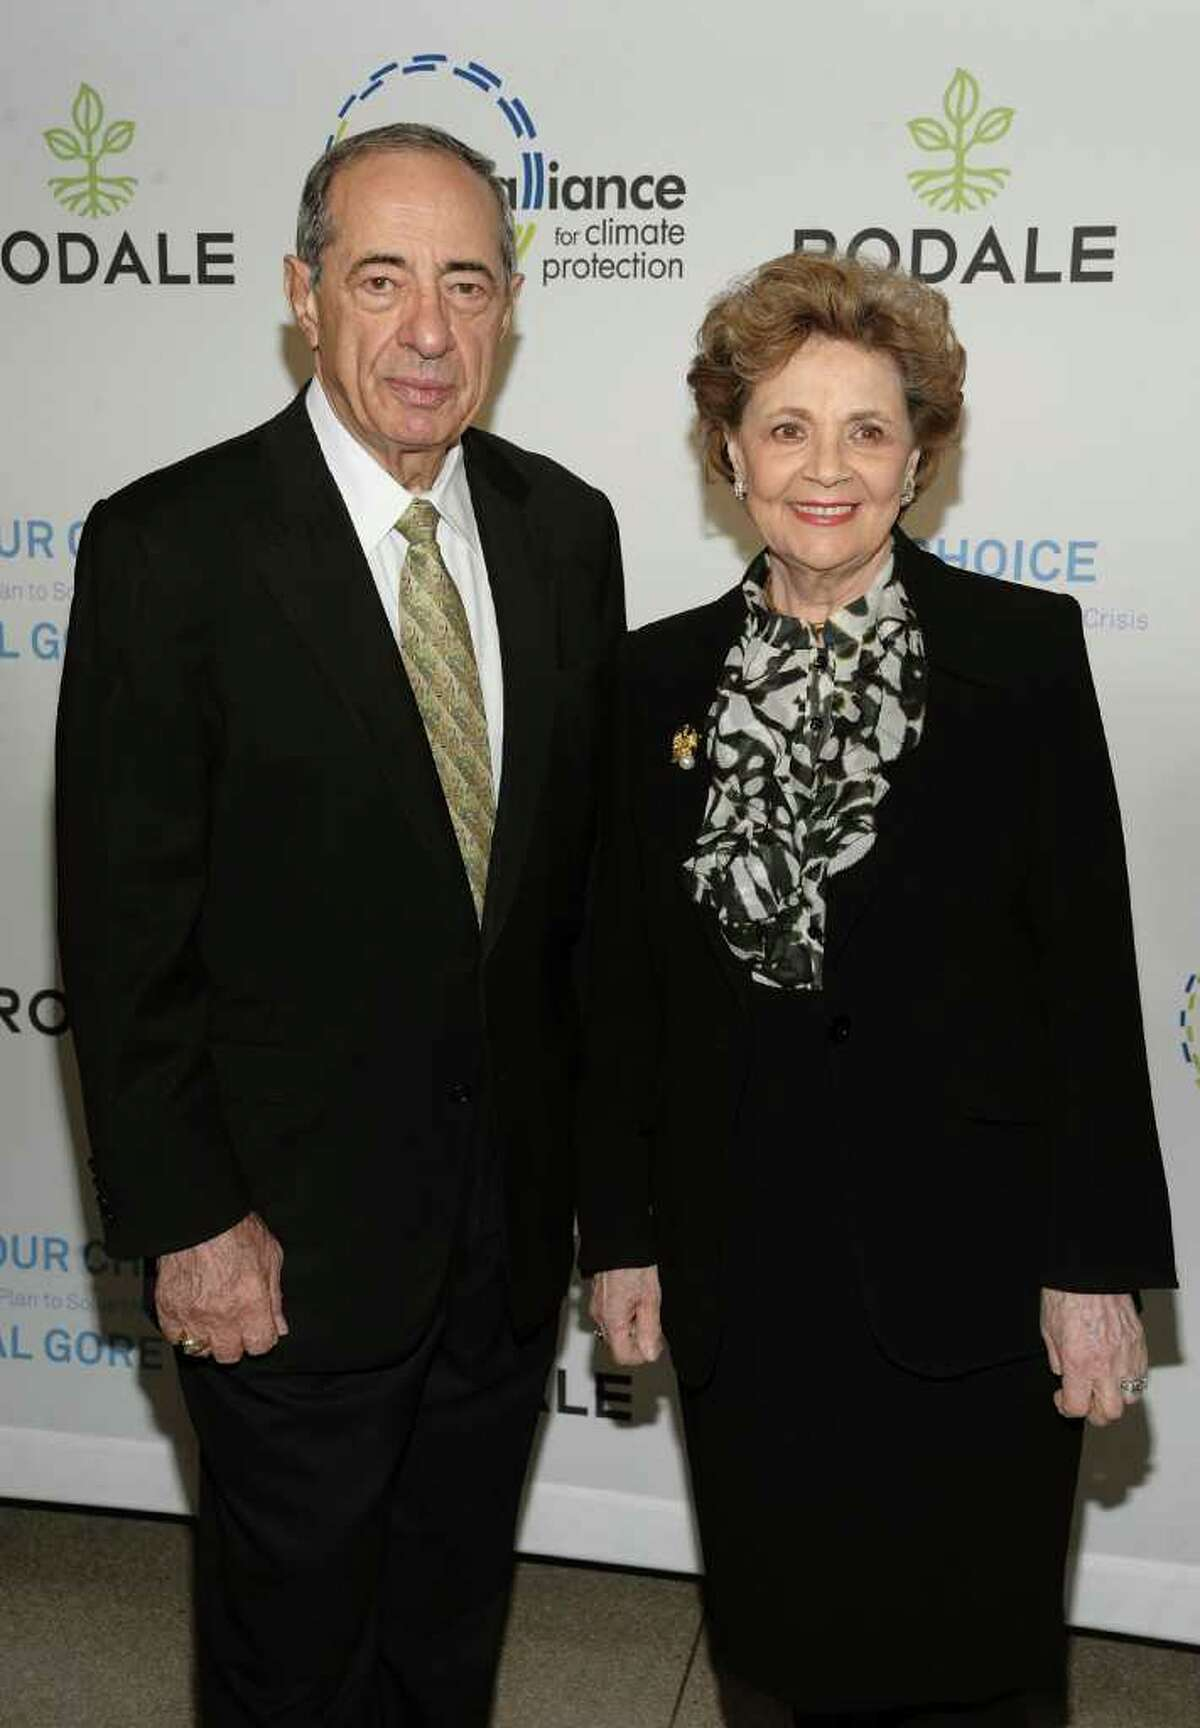 Former Gov. Mario Cuomo and Matilda Cuomo in a 2009 archive photo. (Archive/Getty Images for Rodale)